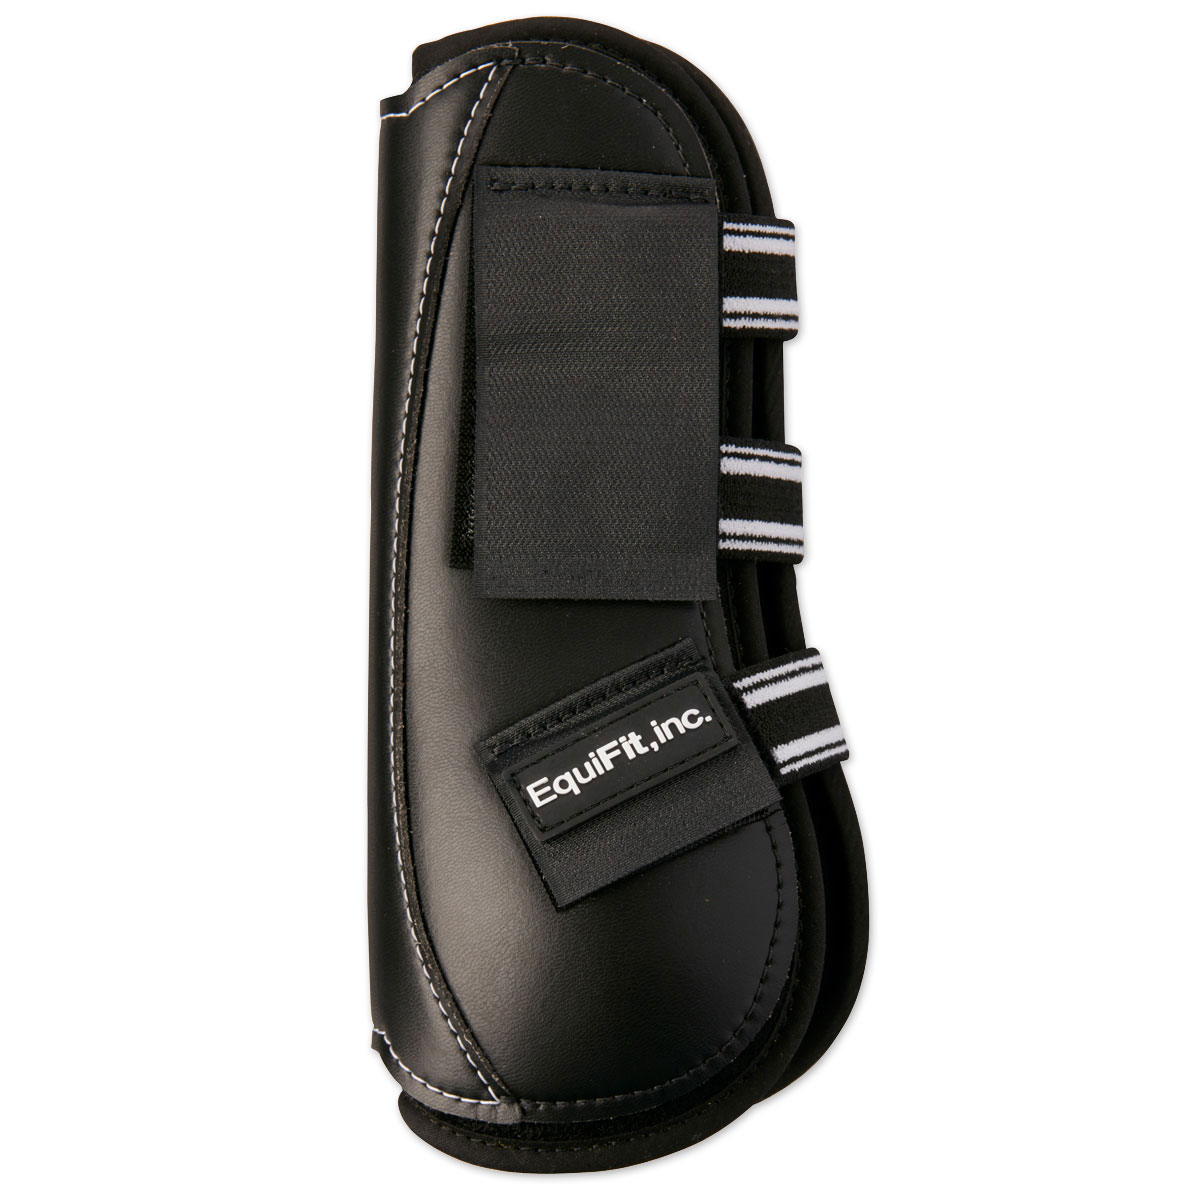 EquiFit EXP3 with Velcro Closure Front